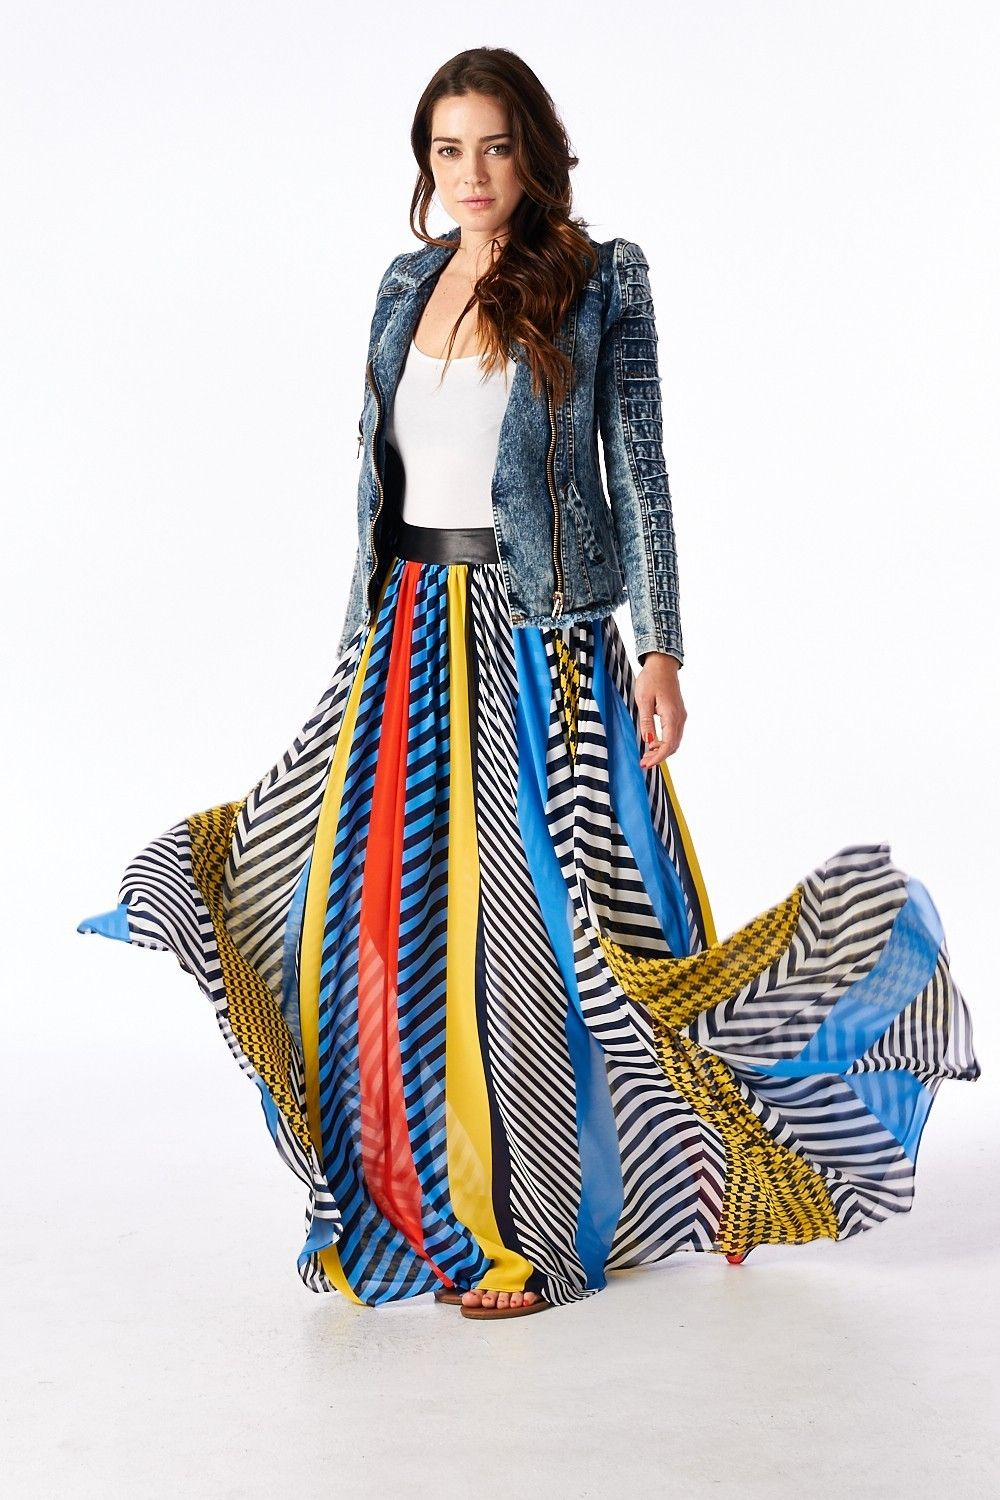 Tov Holy Multi Colored Crossroads Maxi Skirt Chic